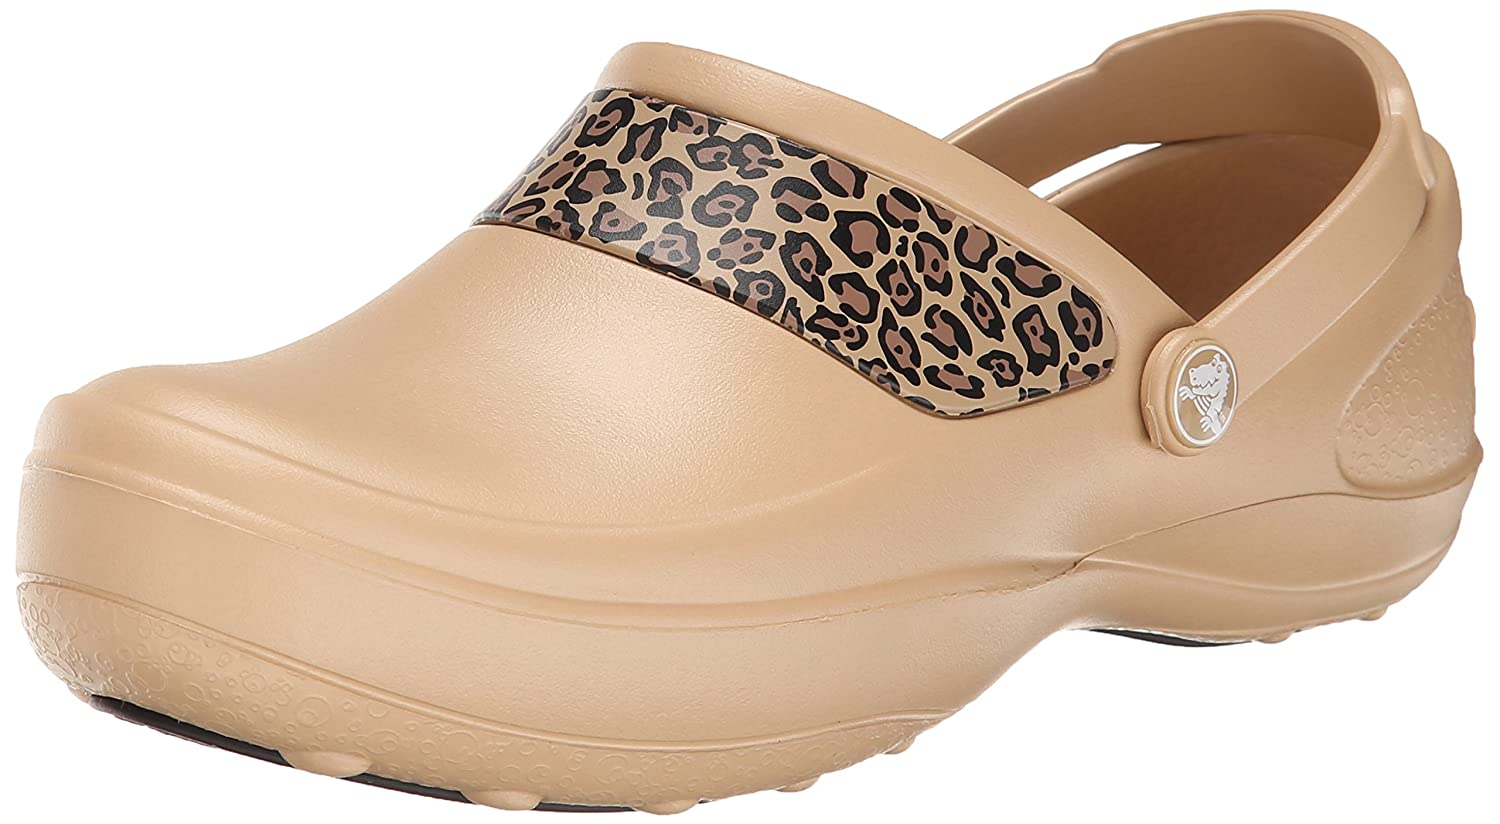 459865690 Crocs Women s Mercy Work Clog -  1540895420-16276  -  22.26